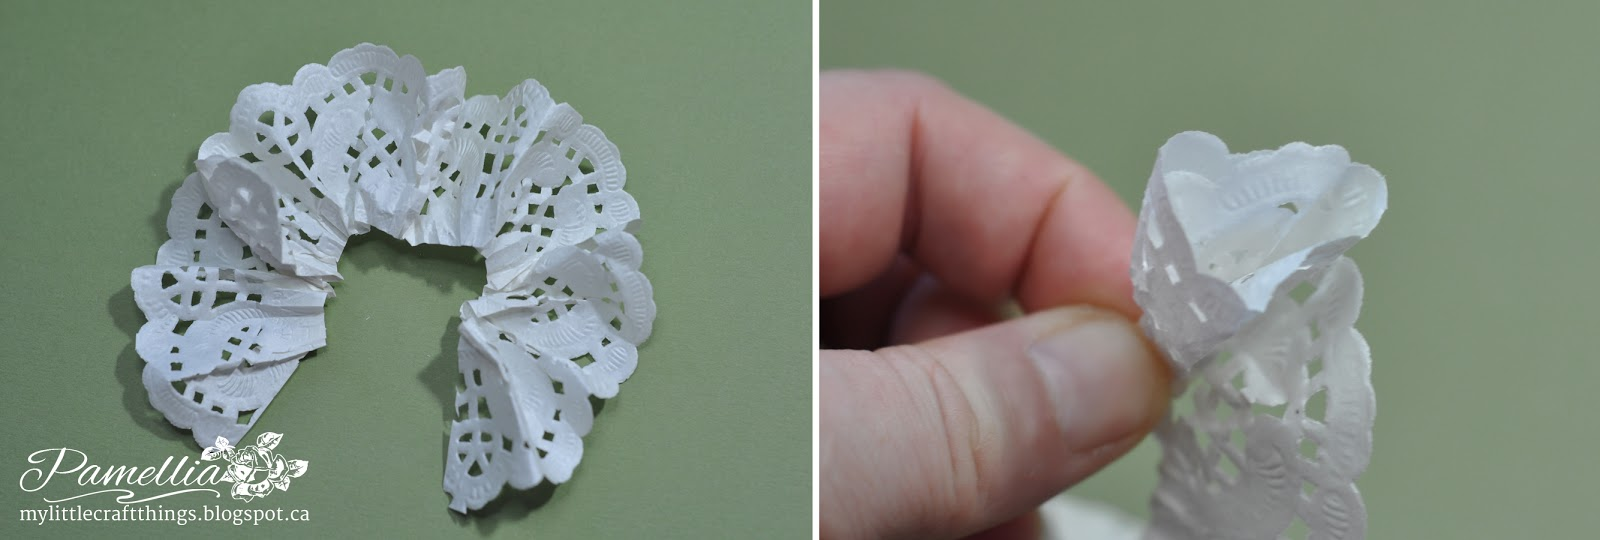 My little craft things doily flower tutorial a beautiful gift here is what it looks like after the scrunching now you are going to use your thumb and finger to pinch the bottom and start rolling it up mightylinksfo